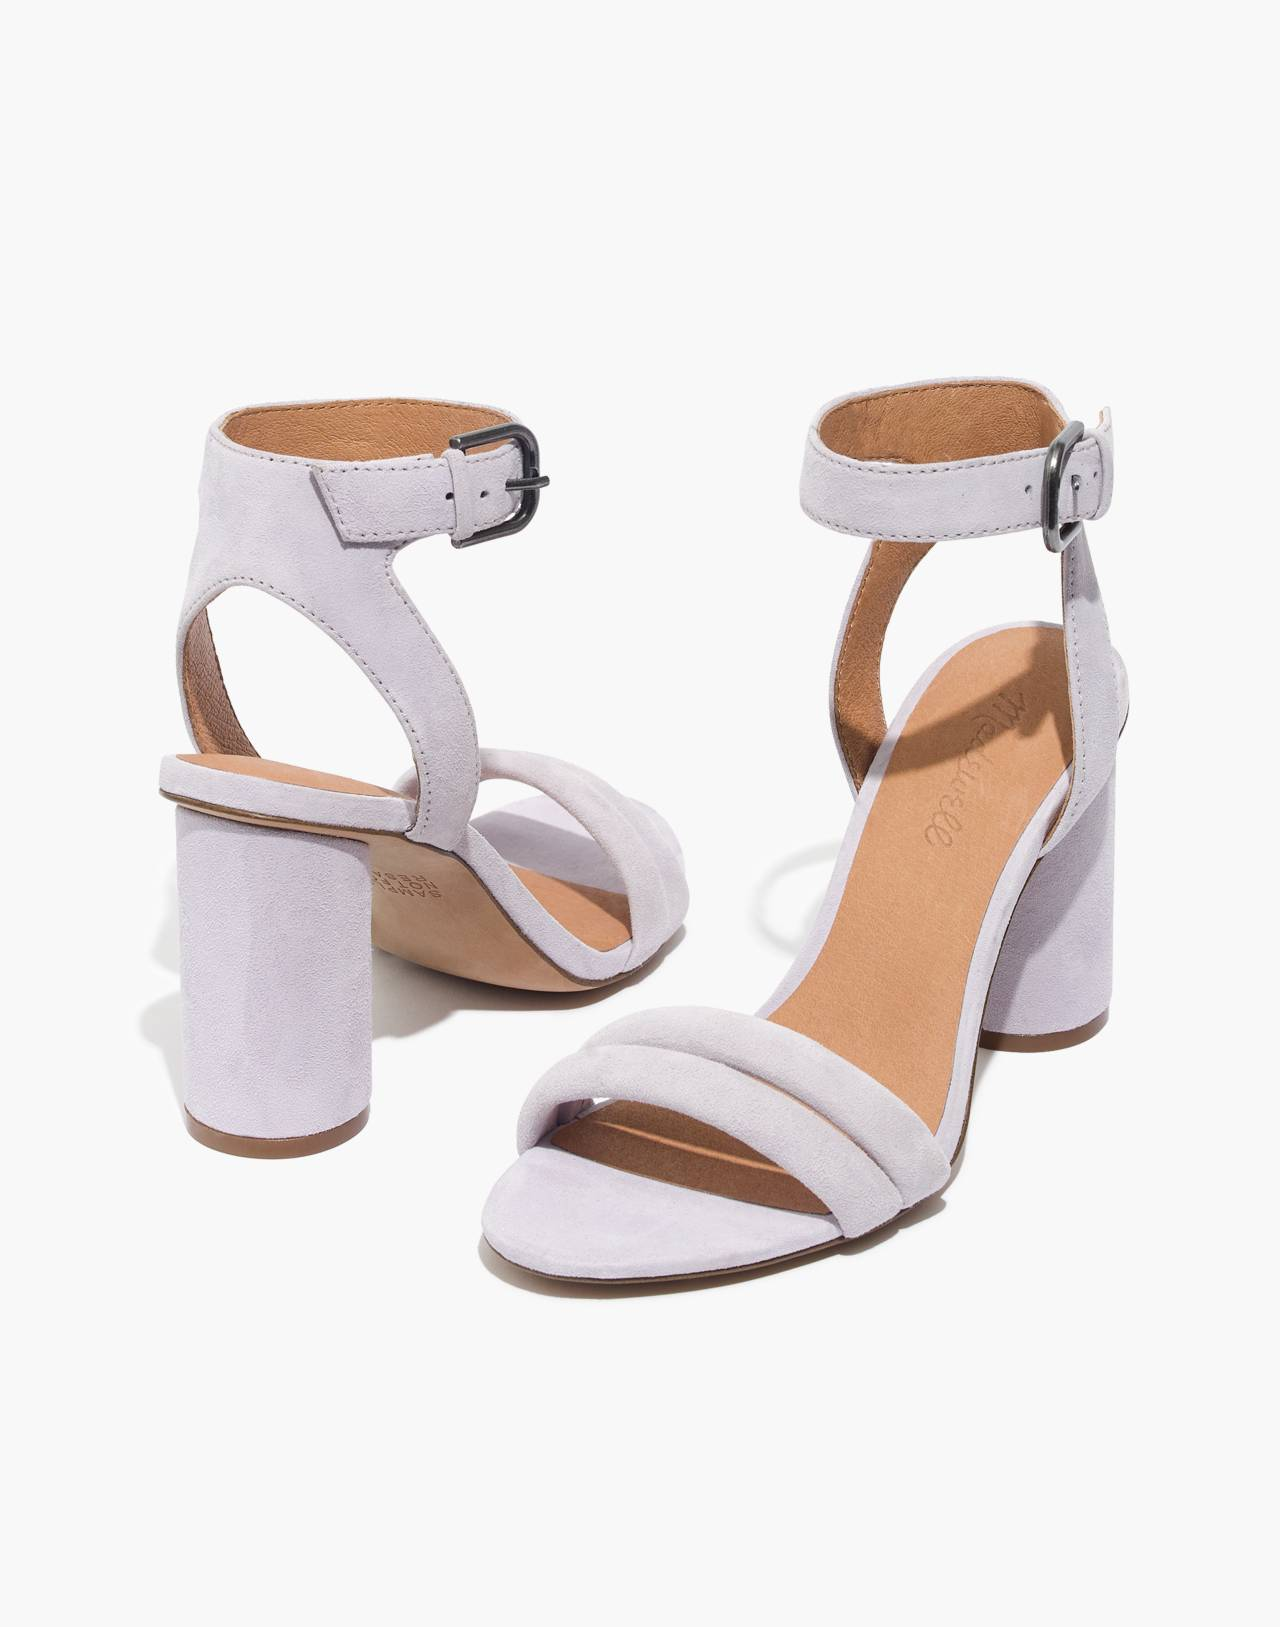 The Rosalie High-Heel Sandal in sundrenched lilac image 1